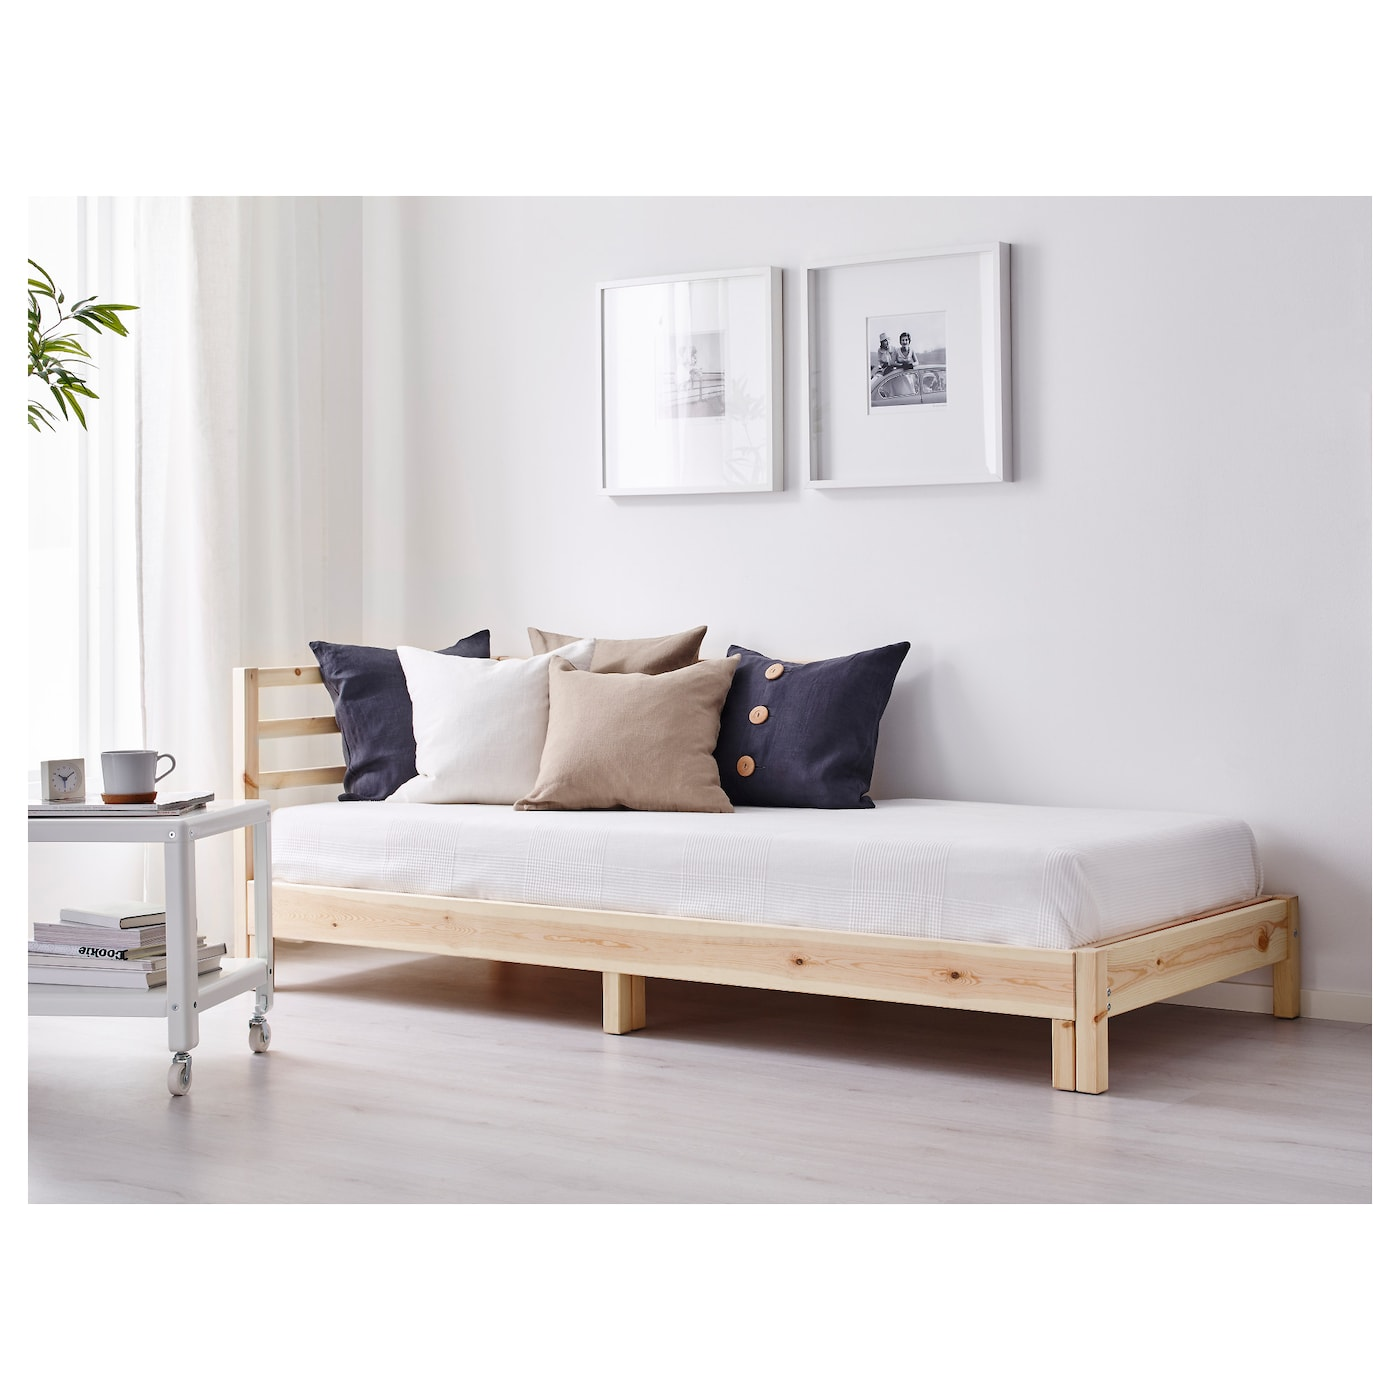 Tarva Day Bed With 2 Mattresses Pine Moshult Firm 80x200